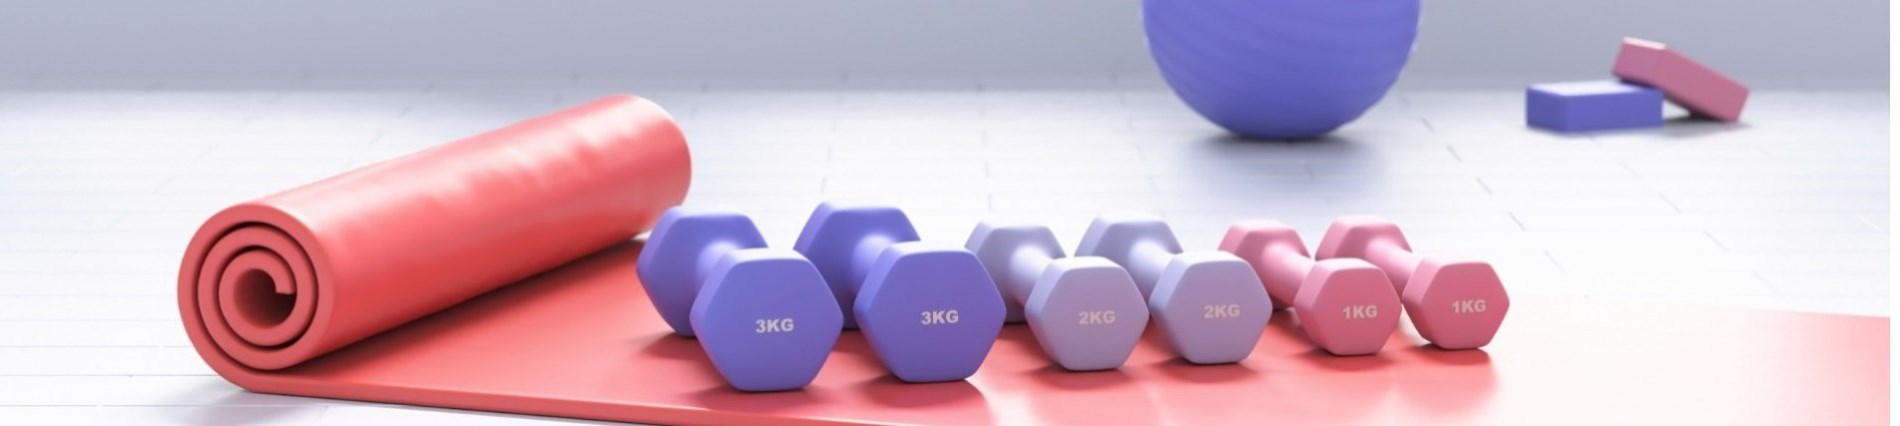 weights on the floor